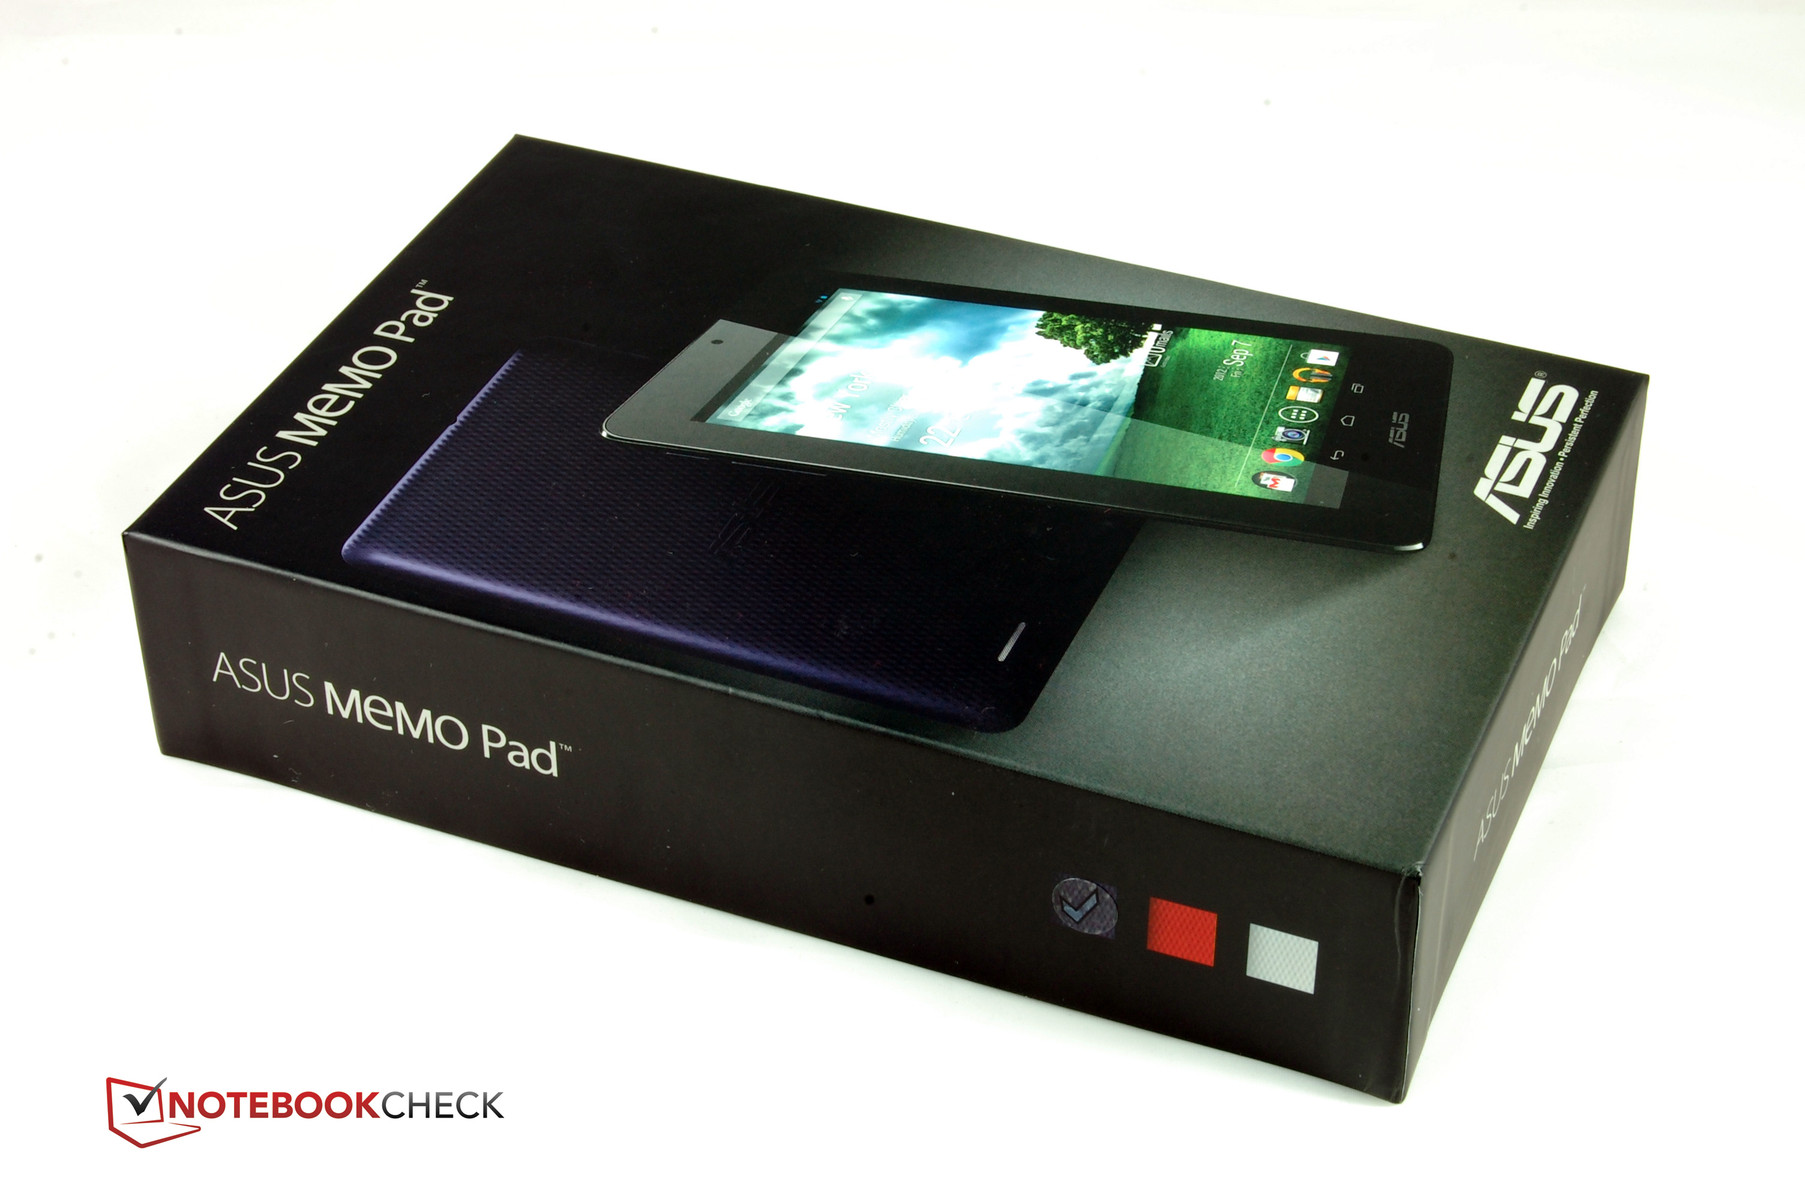 Review Asus Memo Pad ME172V Tablet - NotebookCheck.net Reviews